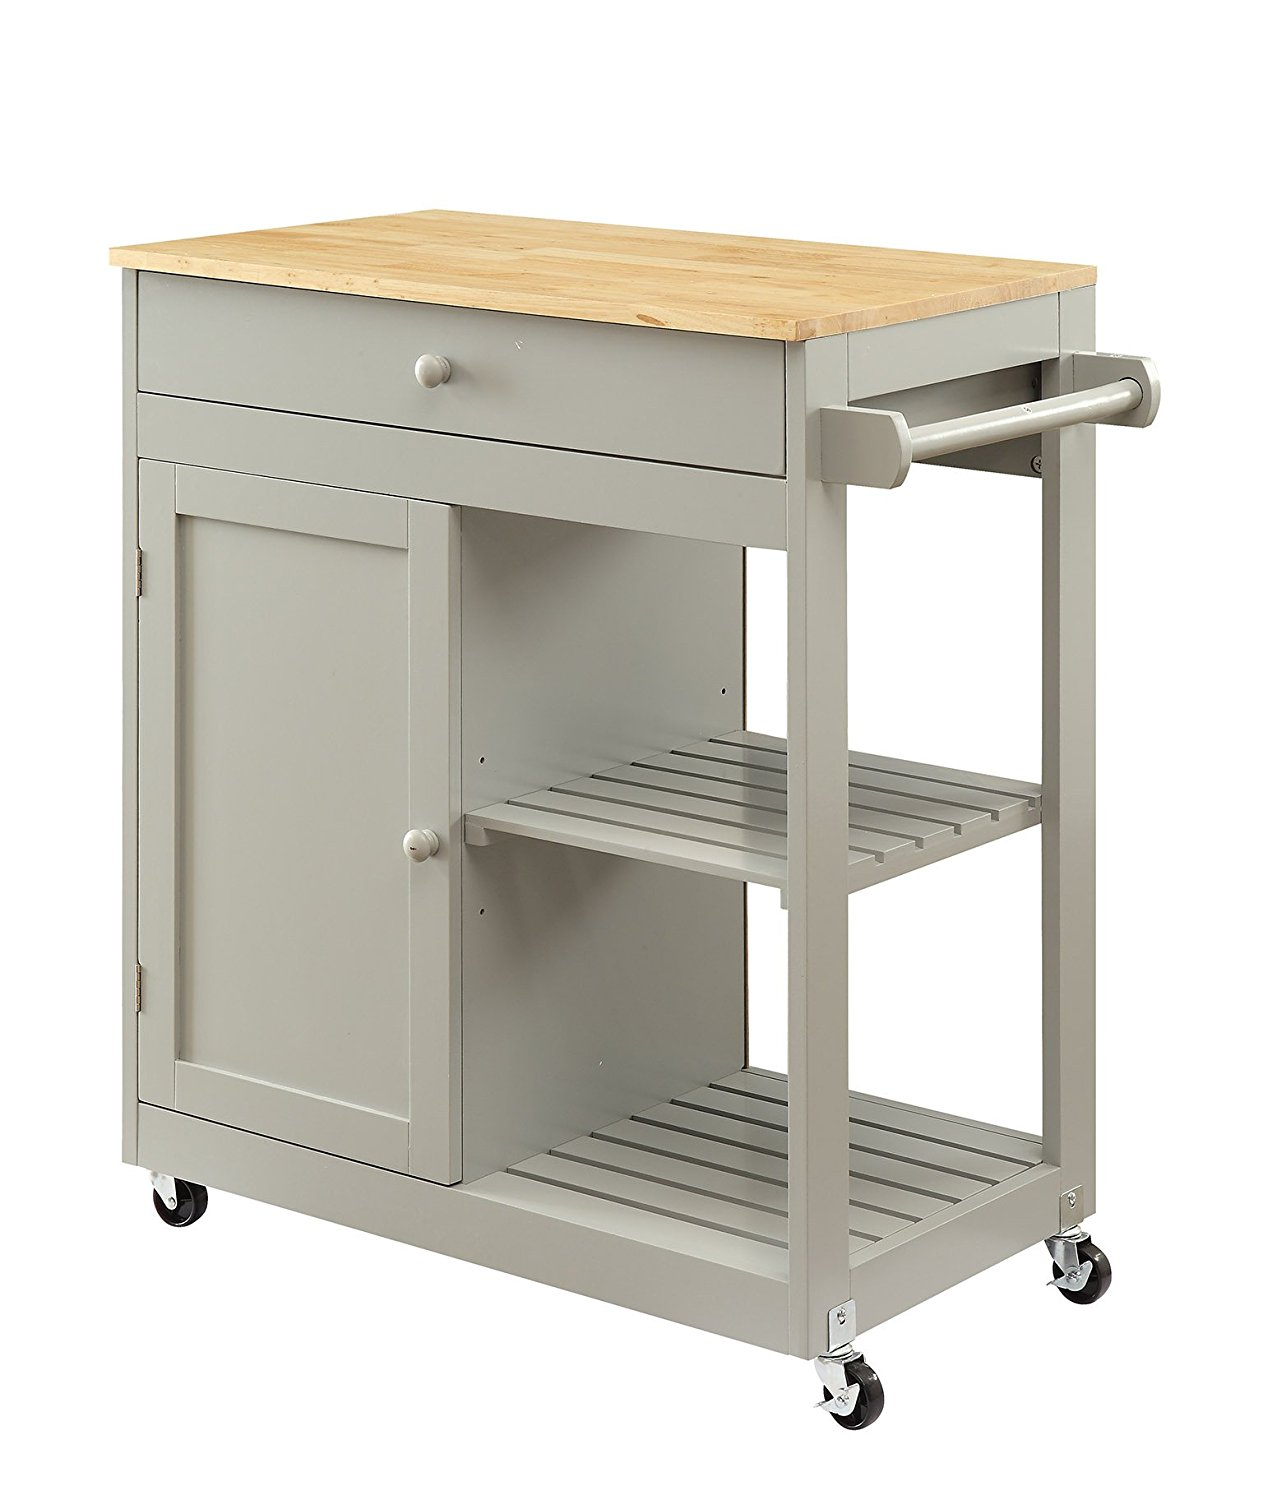 "Oliver and Smith - Nashville Collection - Mobile Kitchen Island Cart on Wheels - Wooden Grey - Natural Oak Butcher Block - 30"" W x 17"" L x 36"" H"